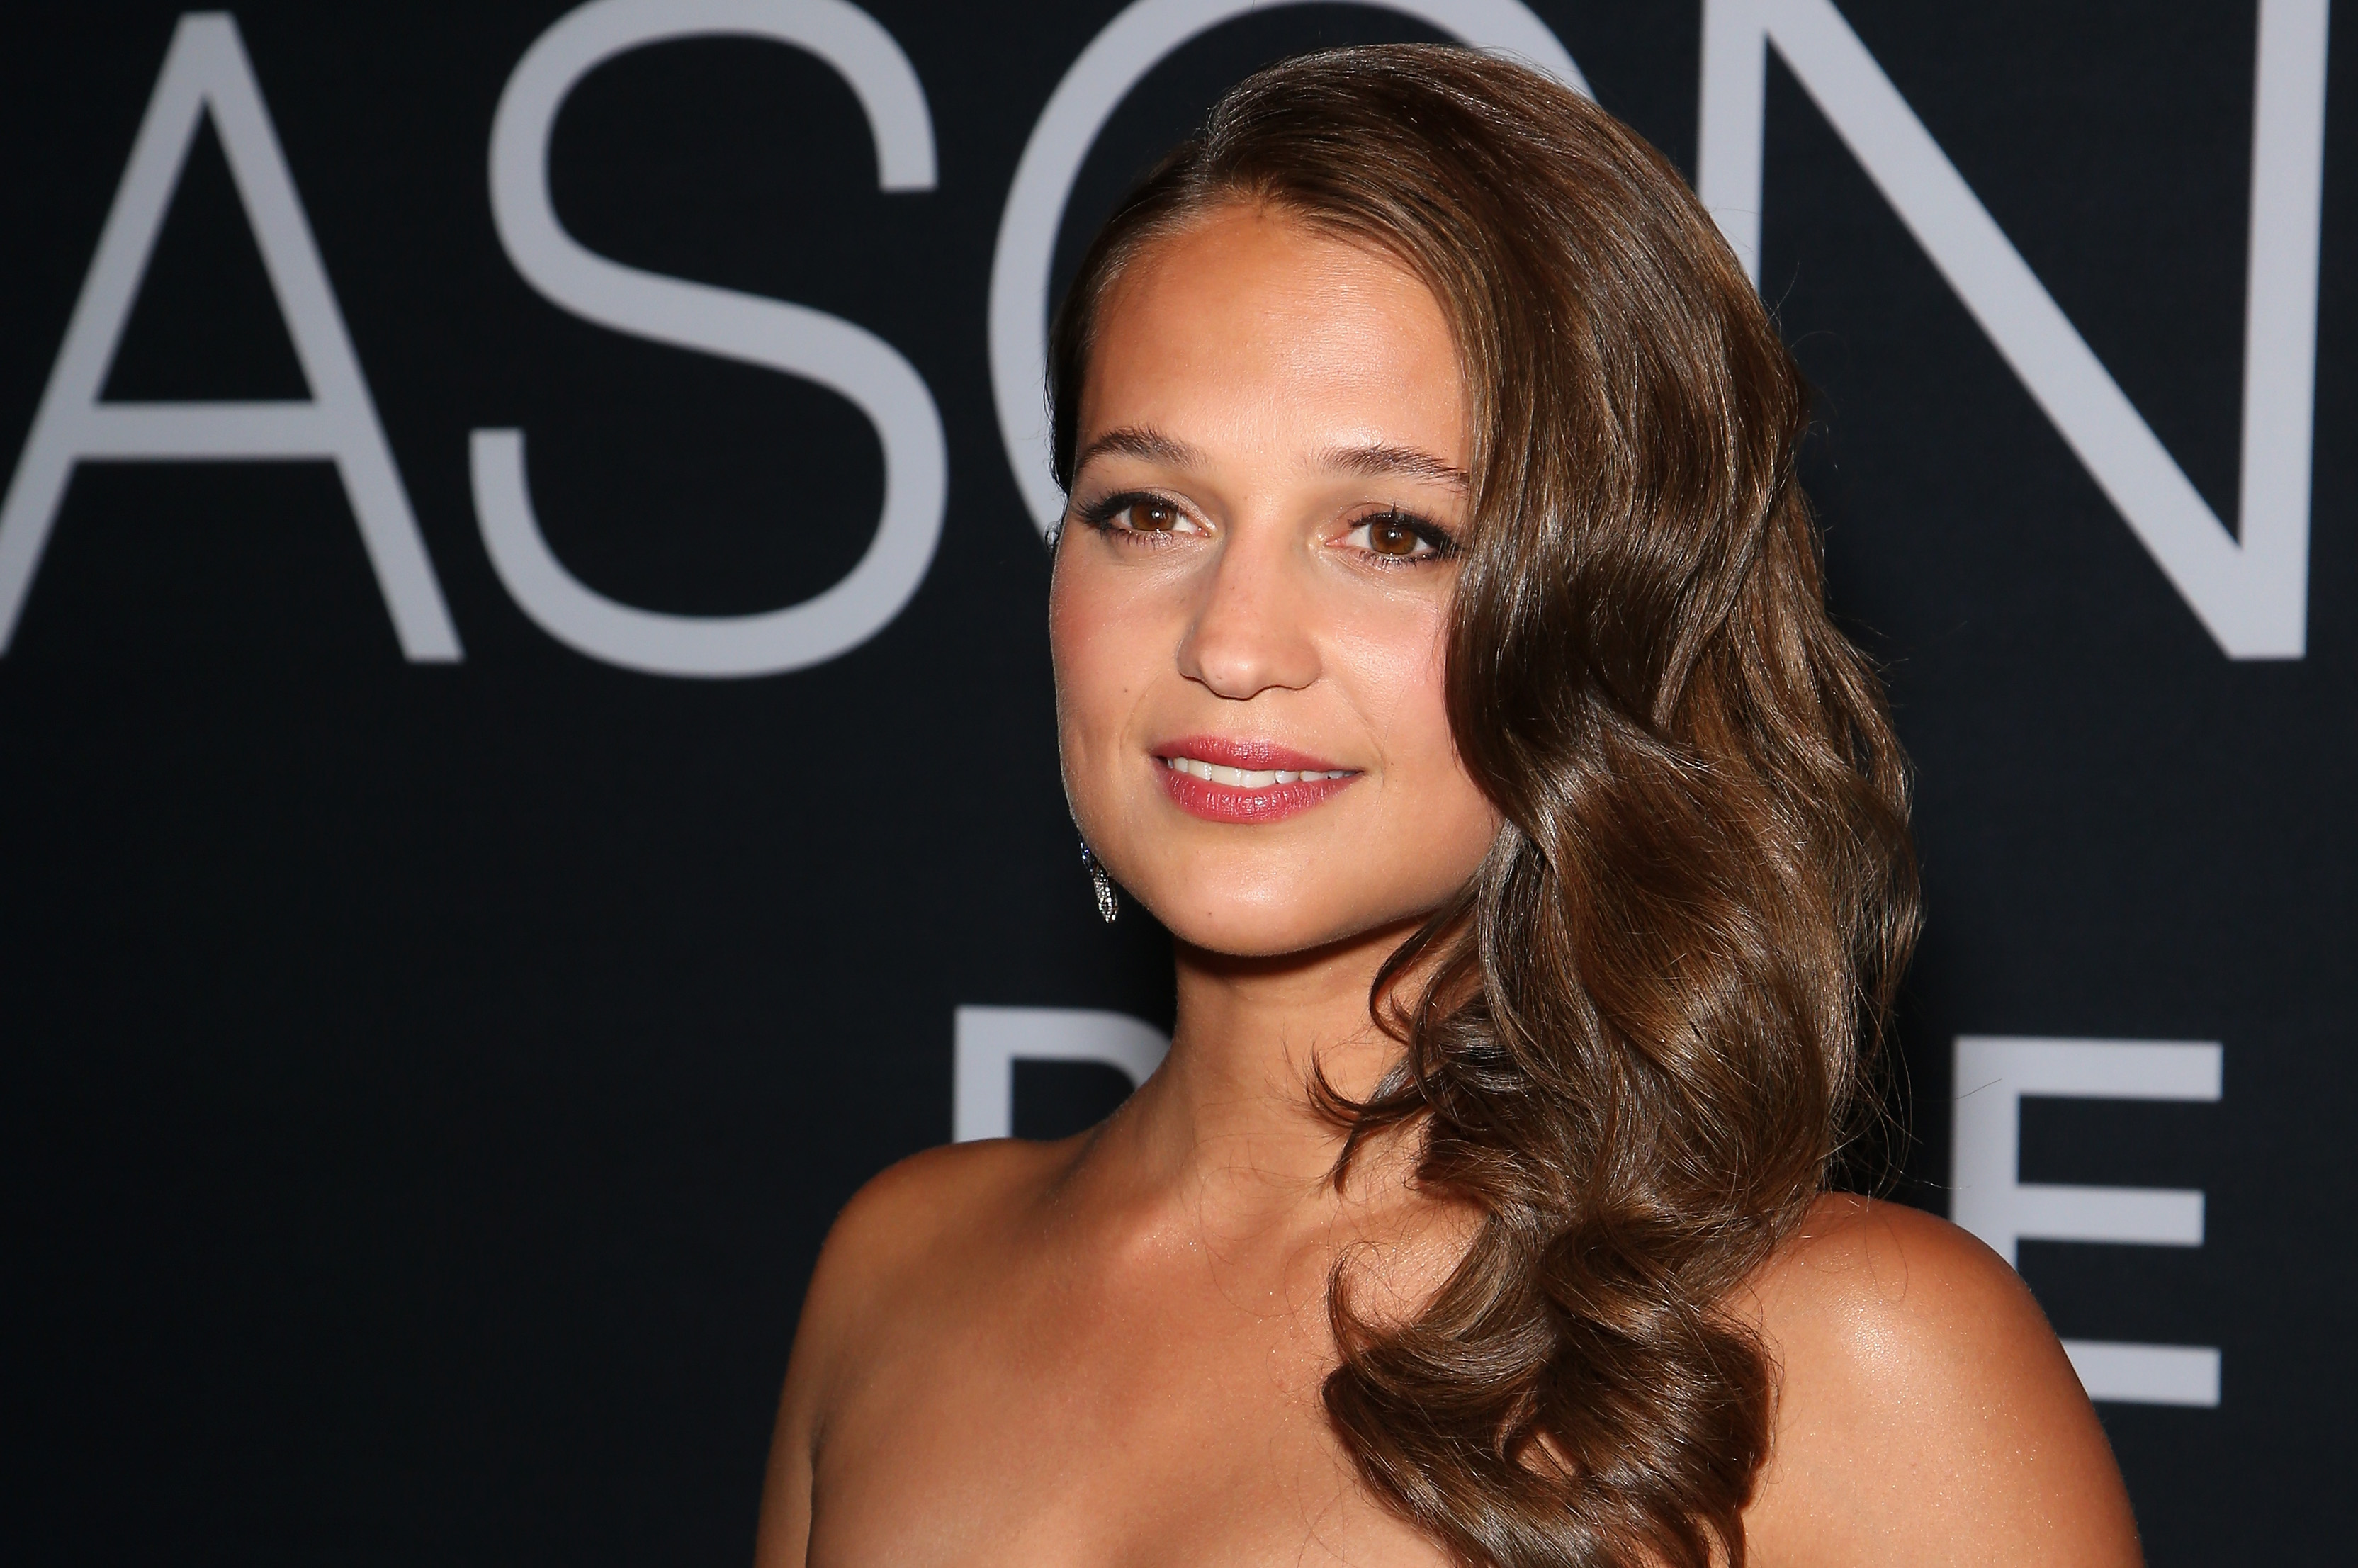 LAS VEGAS, NV - JULY 18:  Actress Alicia Vikander attends the premiere of Universal Pictures'  Jason Bourne  at The Colosseum at Caesars Palace on July 18, 2016 in Las Vegas, Nevada.  (Photo by Gabe Ginsberg/FilmMagic)